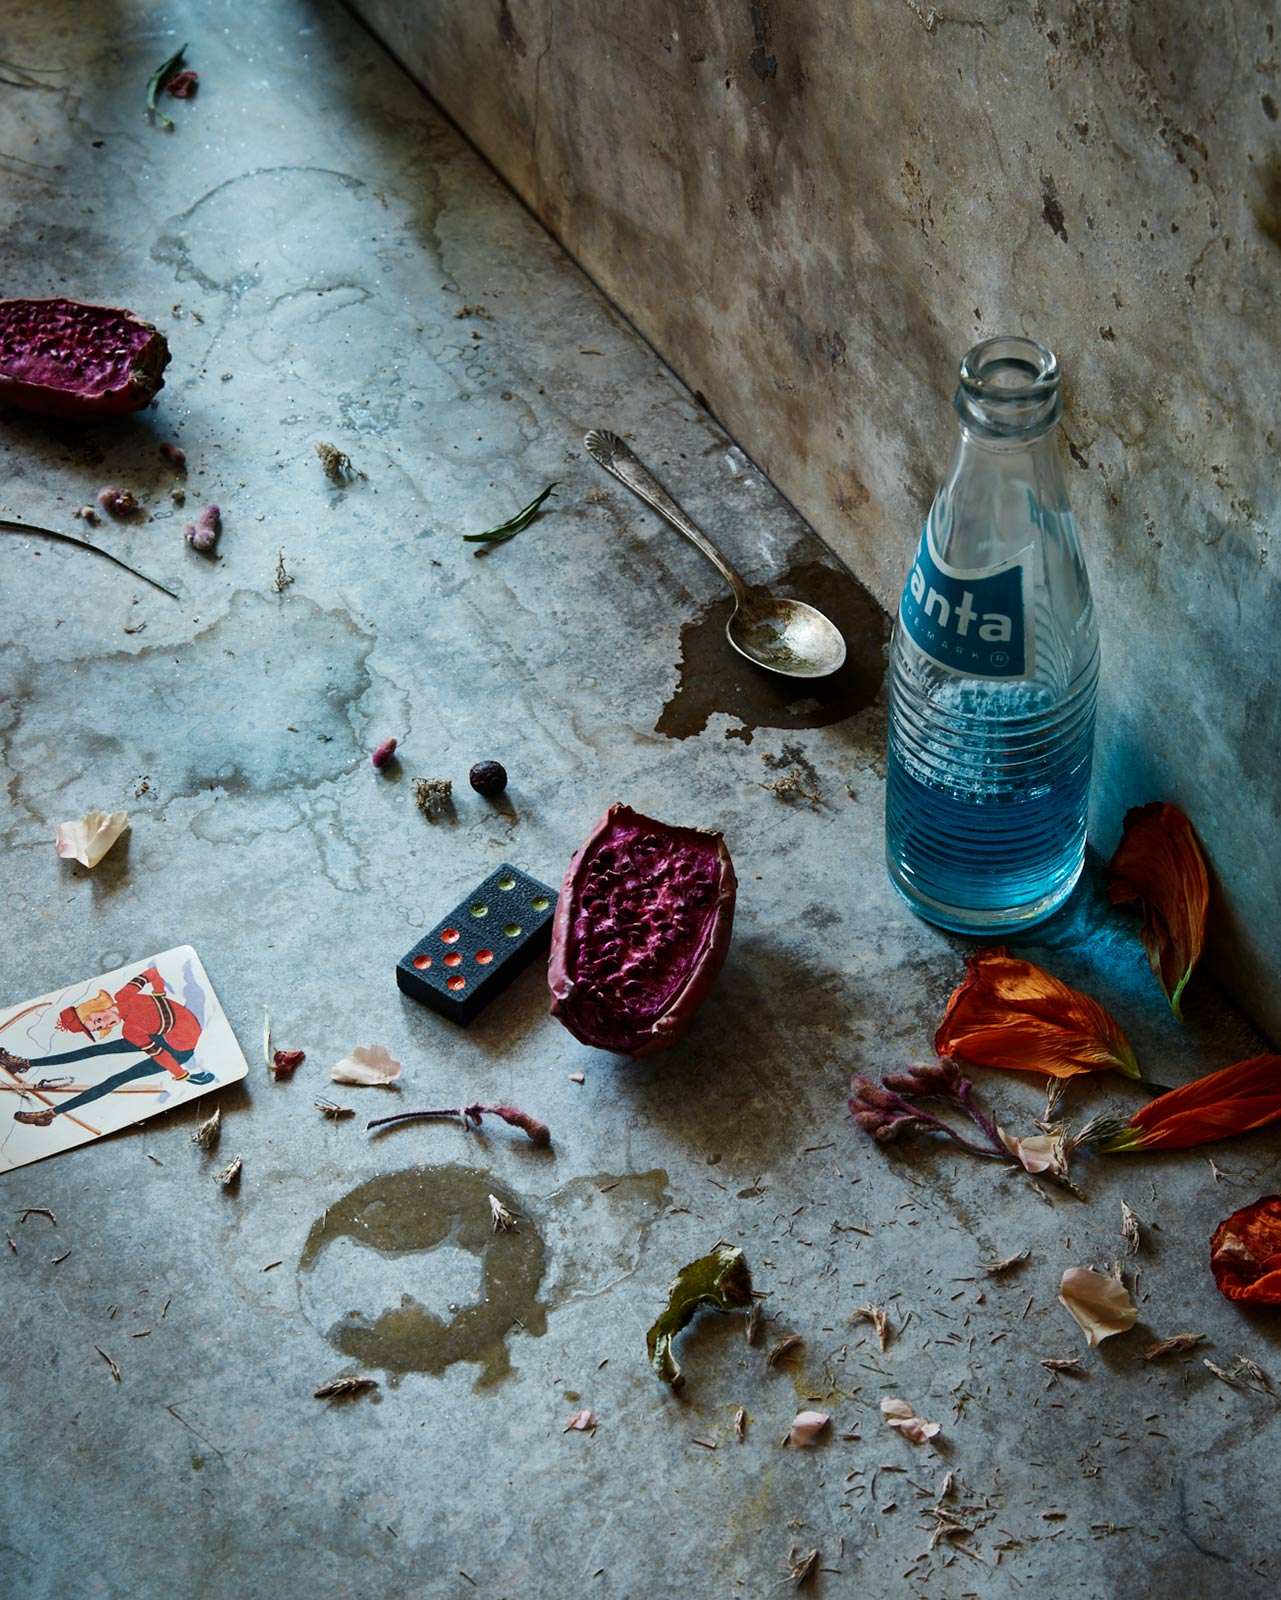 fine art still life image with odd colorful props